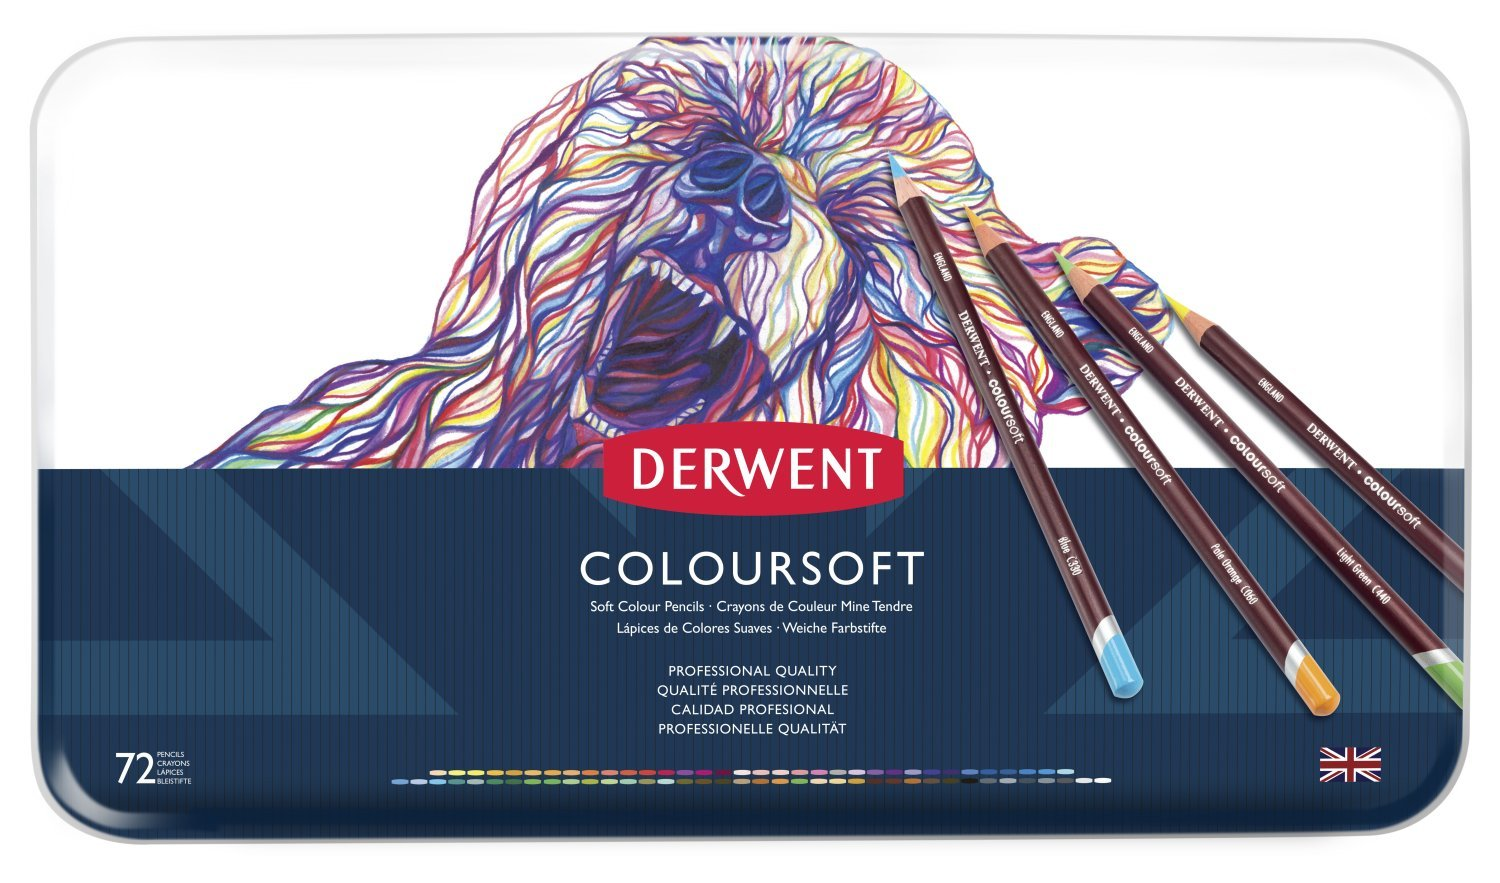 Derwent Colored Pencils, Colorsoft Pencils, Drawing, Art, Metal Tin, 72 Count (0701029) by Derwent